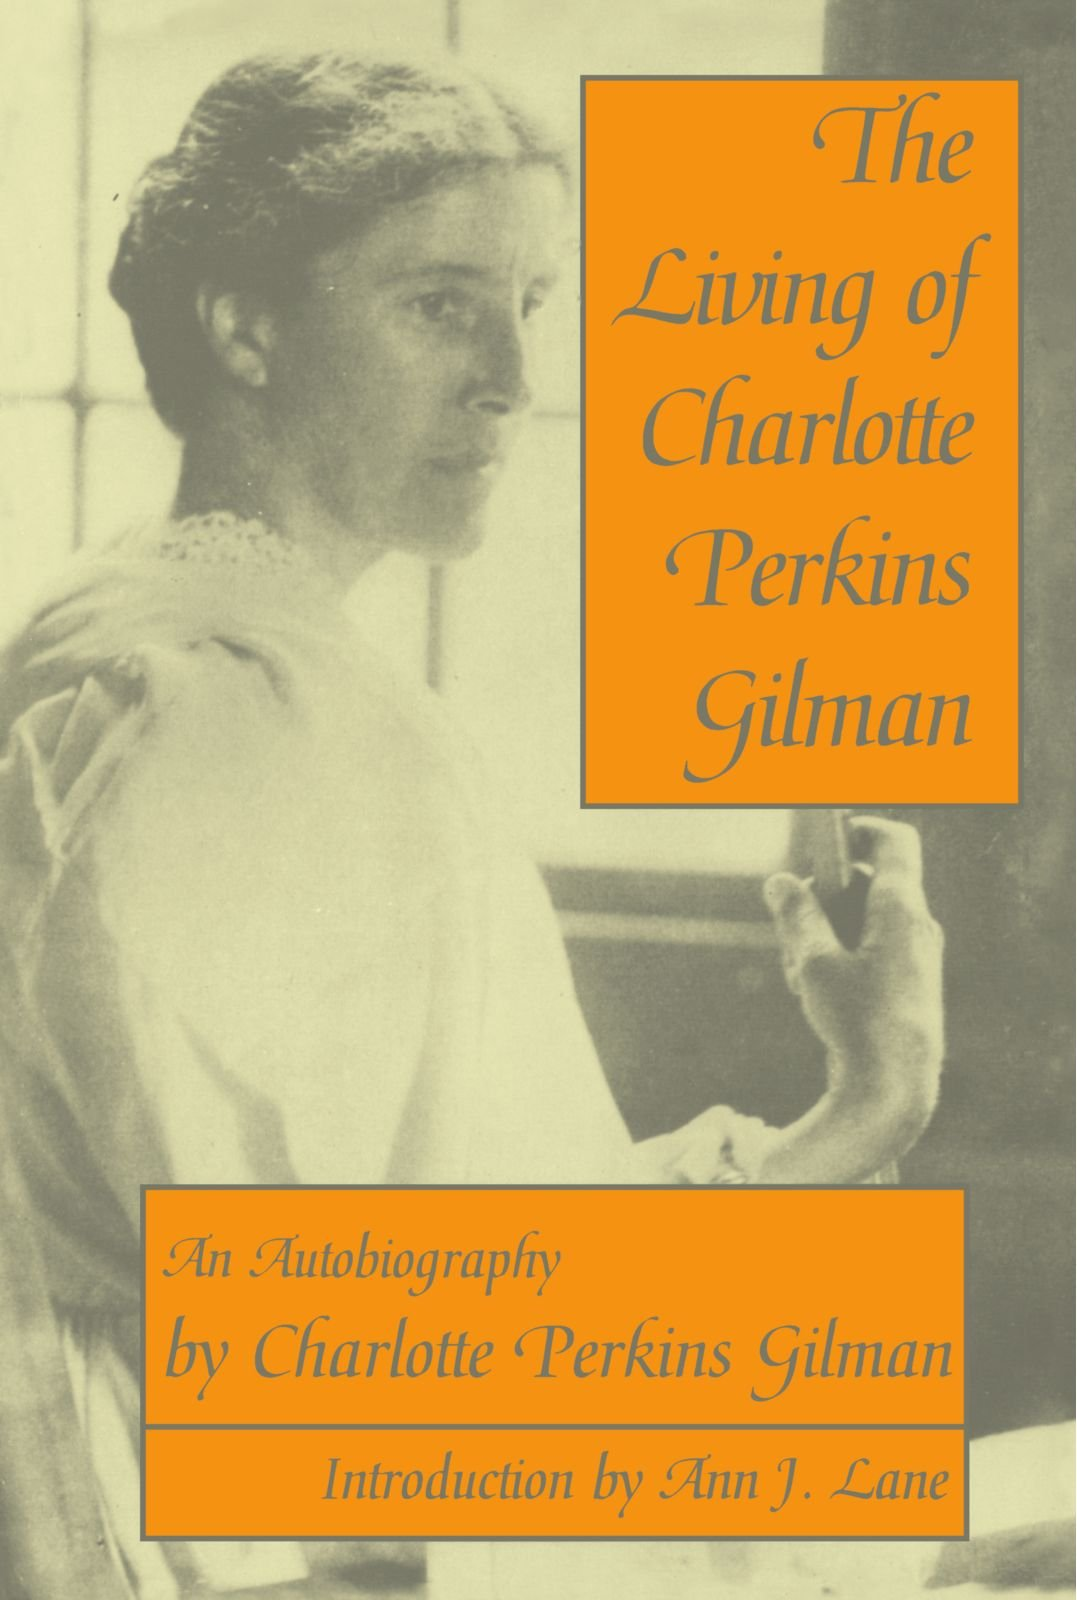 The Living of Charlotte Perkins Gilman: An Autobiography (Wisconsin Studies in Autobiography)